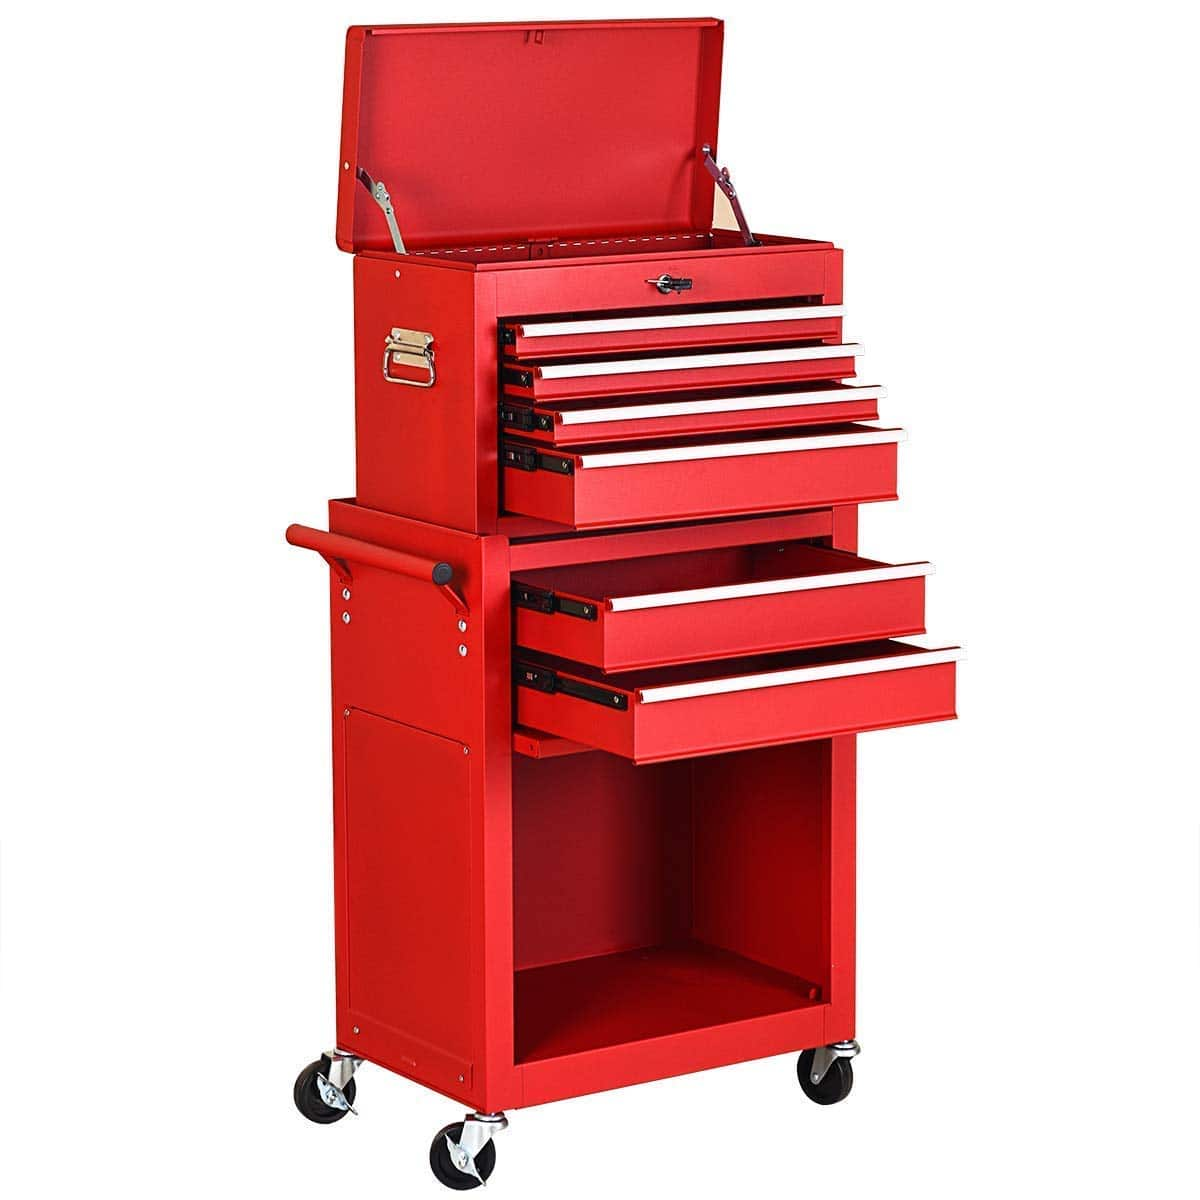 Goplus 6-Drawer Rolling Tool Chest Removable Tool Storage Cabinet with Sliding Drawers (Red) -- $169.99 + Free Shipping